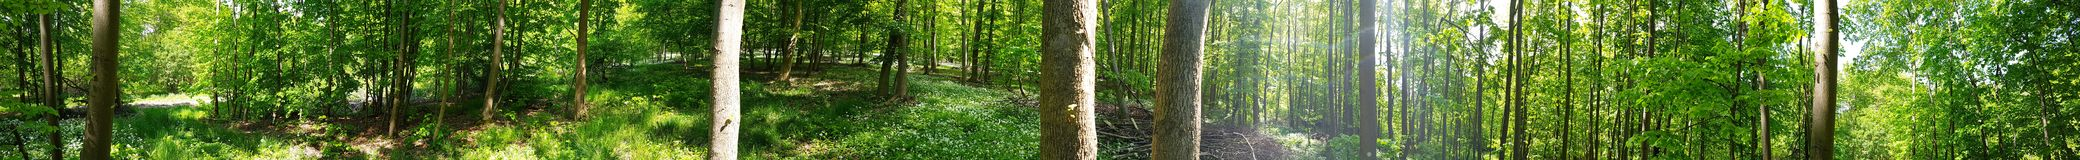 Forest In Lower Saxony imagens de stock royalty free